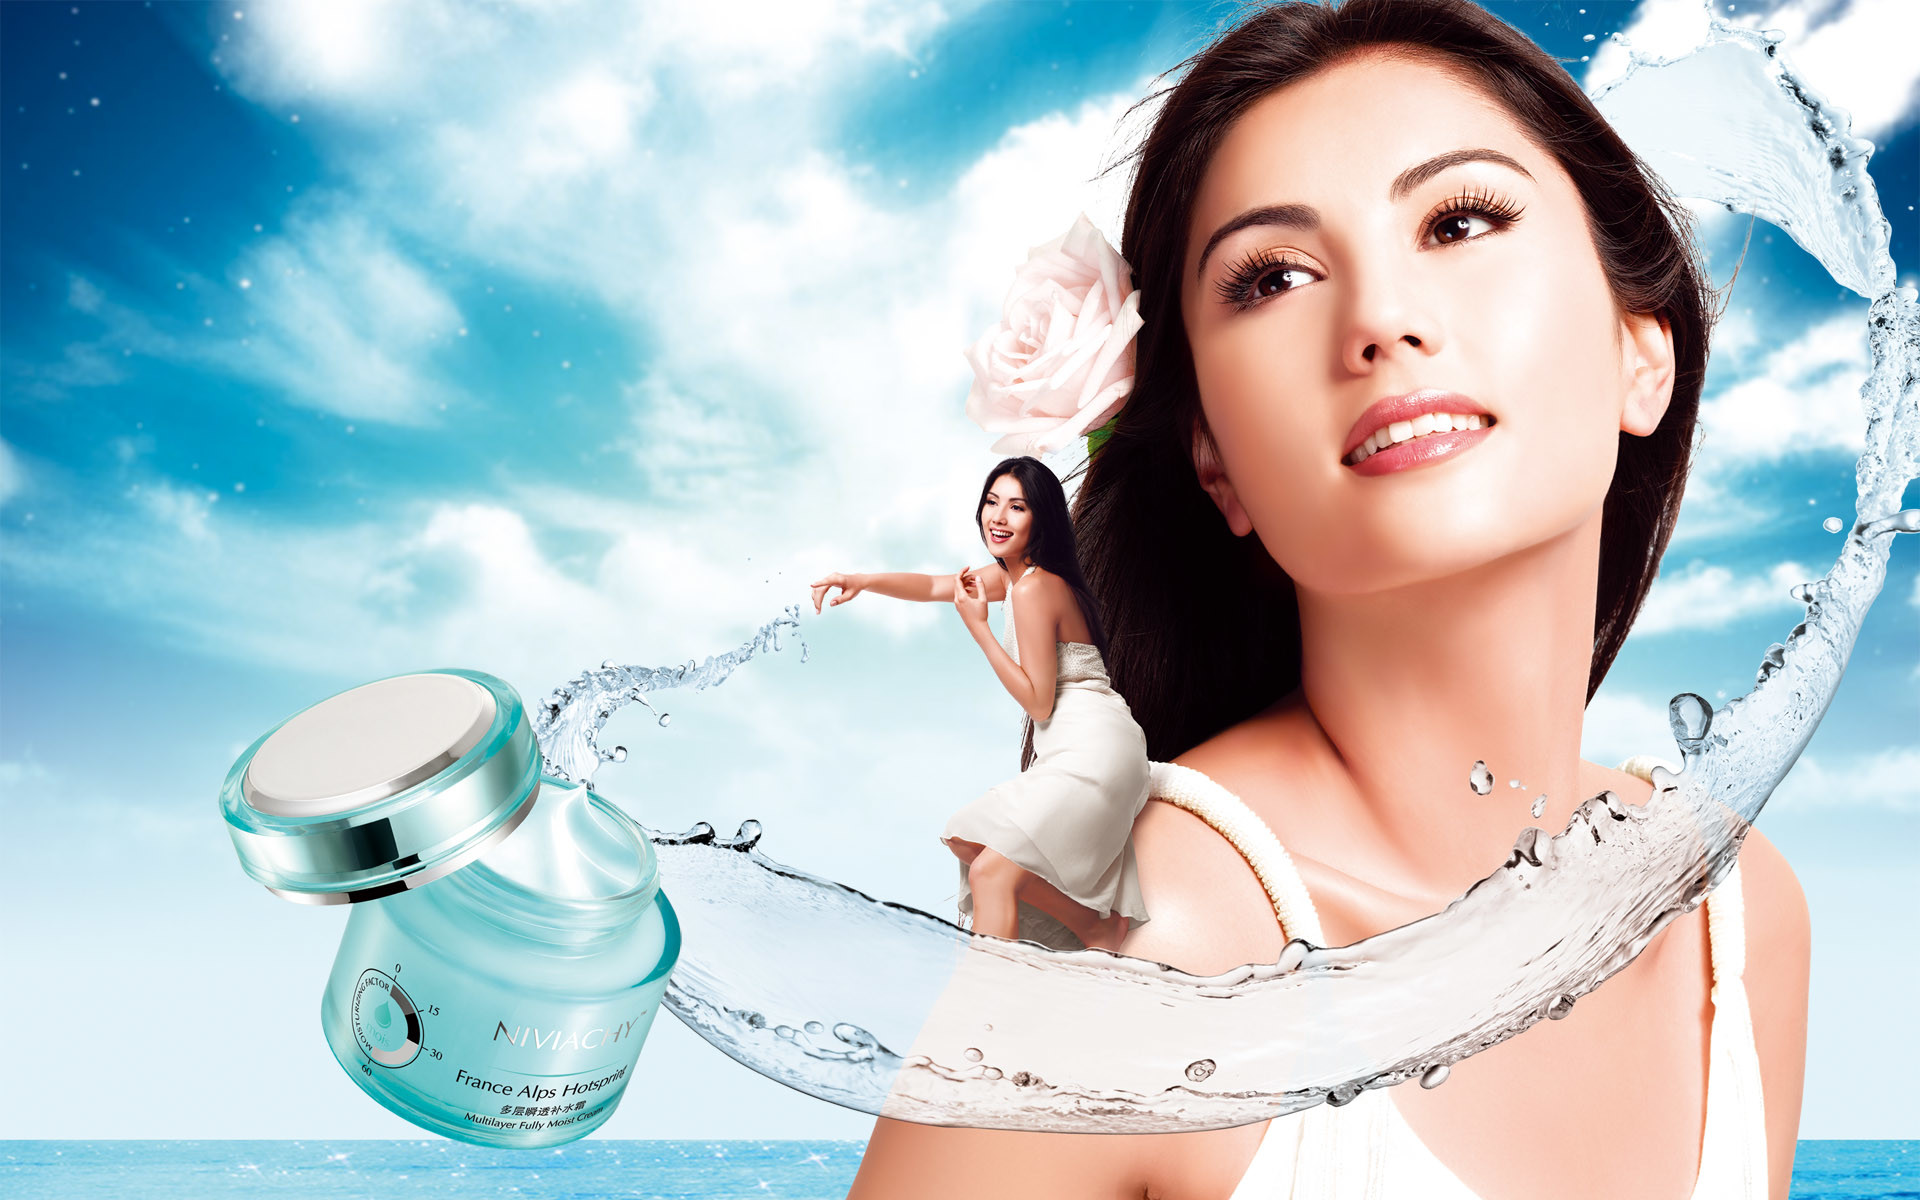 Beauty Salon Spas: What Are the Benefits of a Salon Spa?